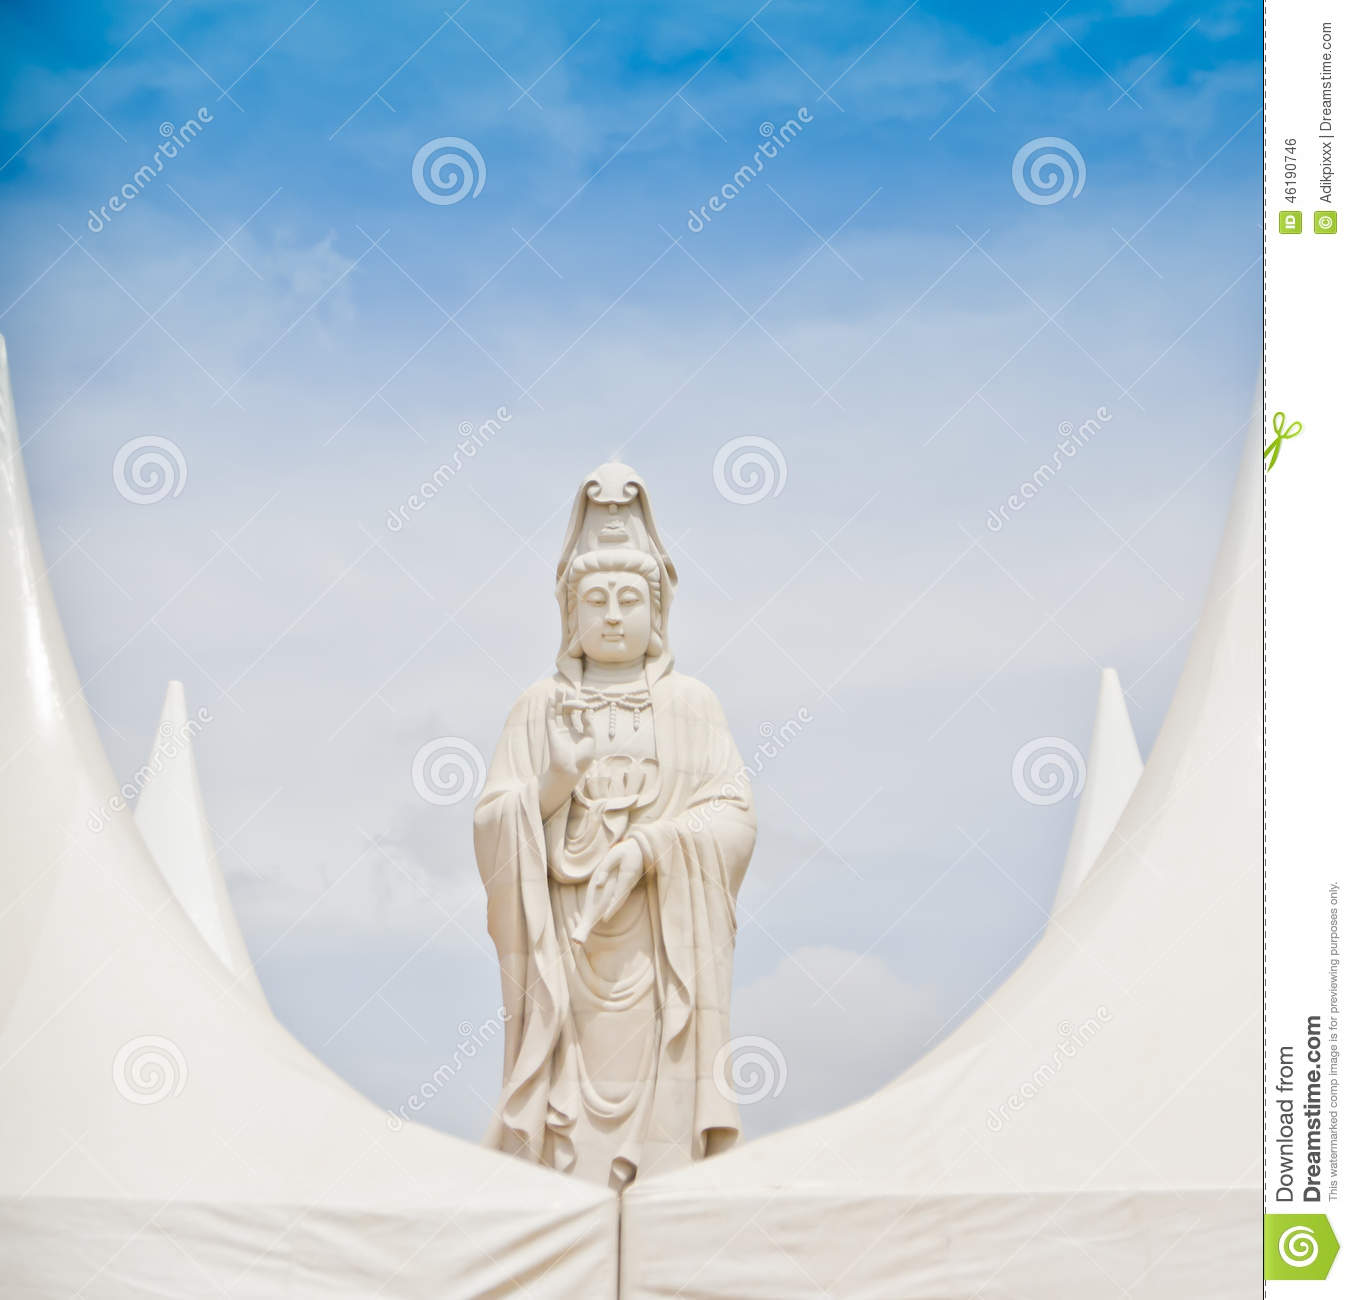 Statue of Guan im.(What about Religion, in Thailand, it is public).